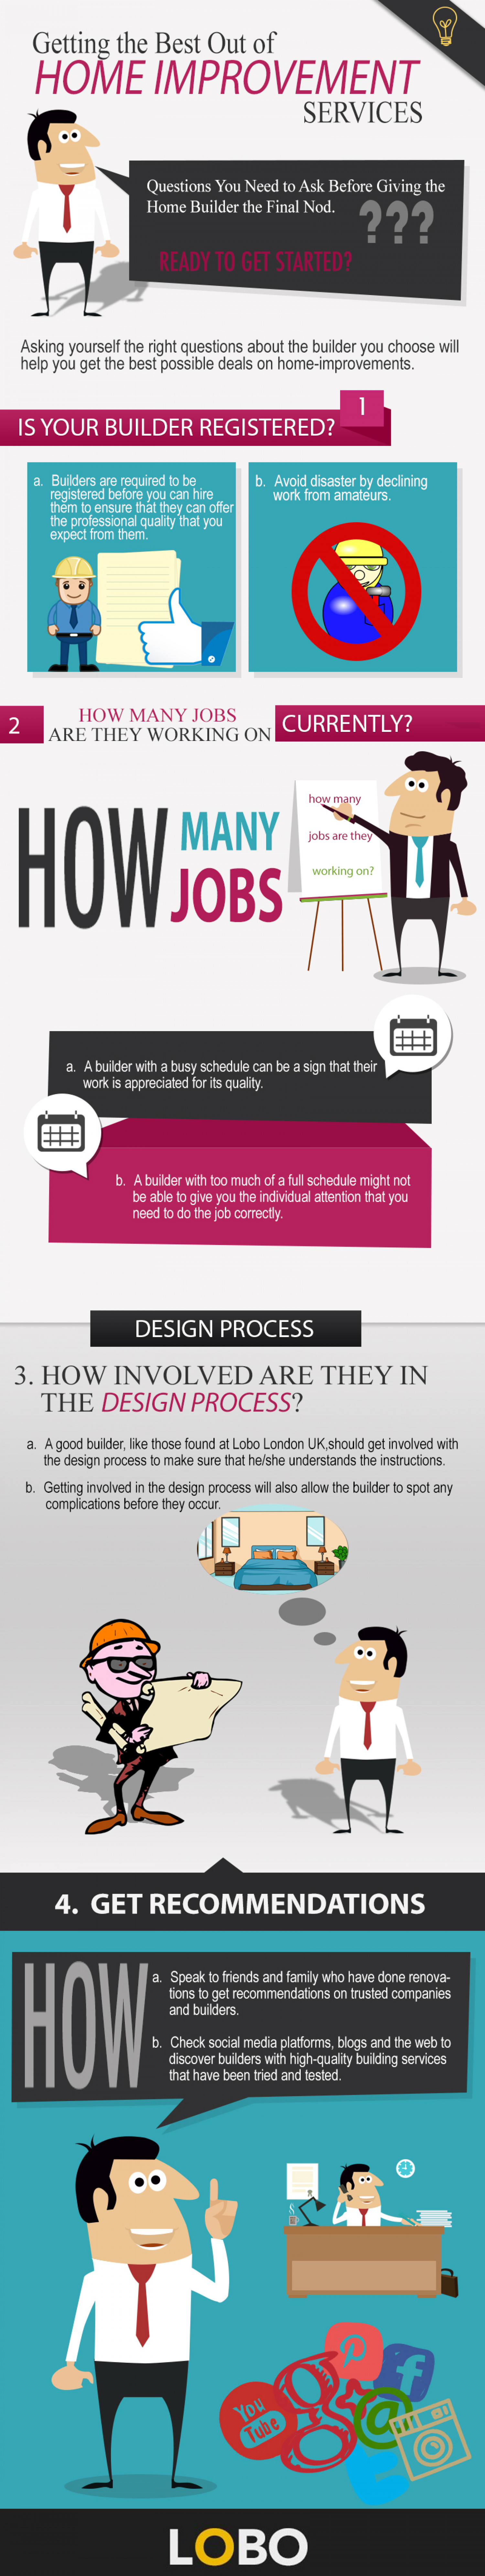 Sure-Shot Ways To Get The Best Deals From Home Improvement Builders Infographic